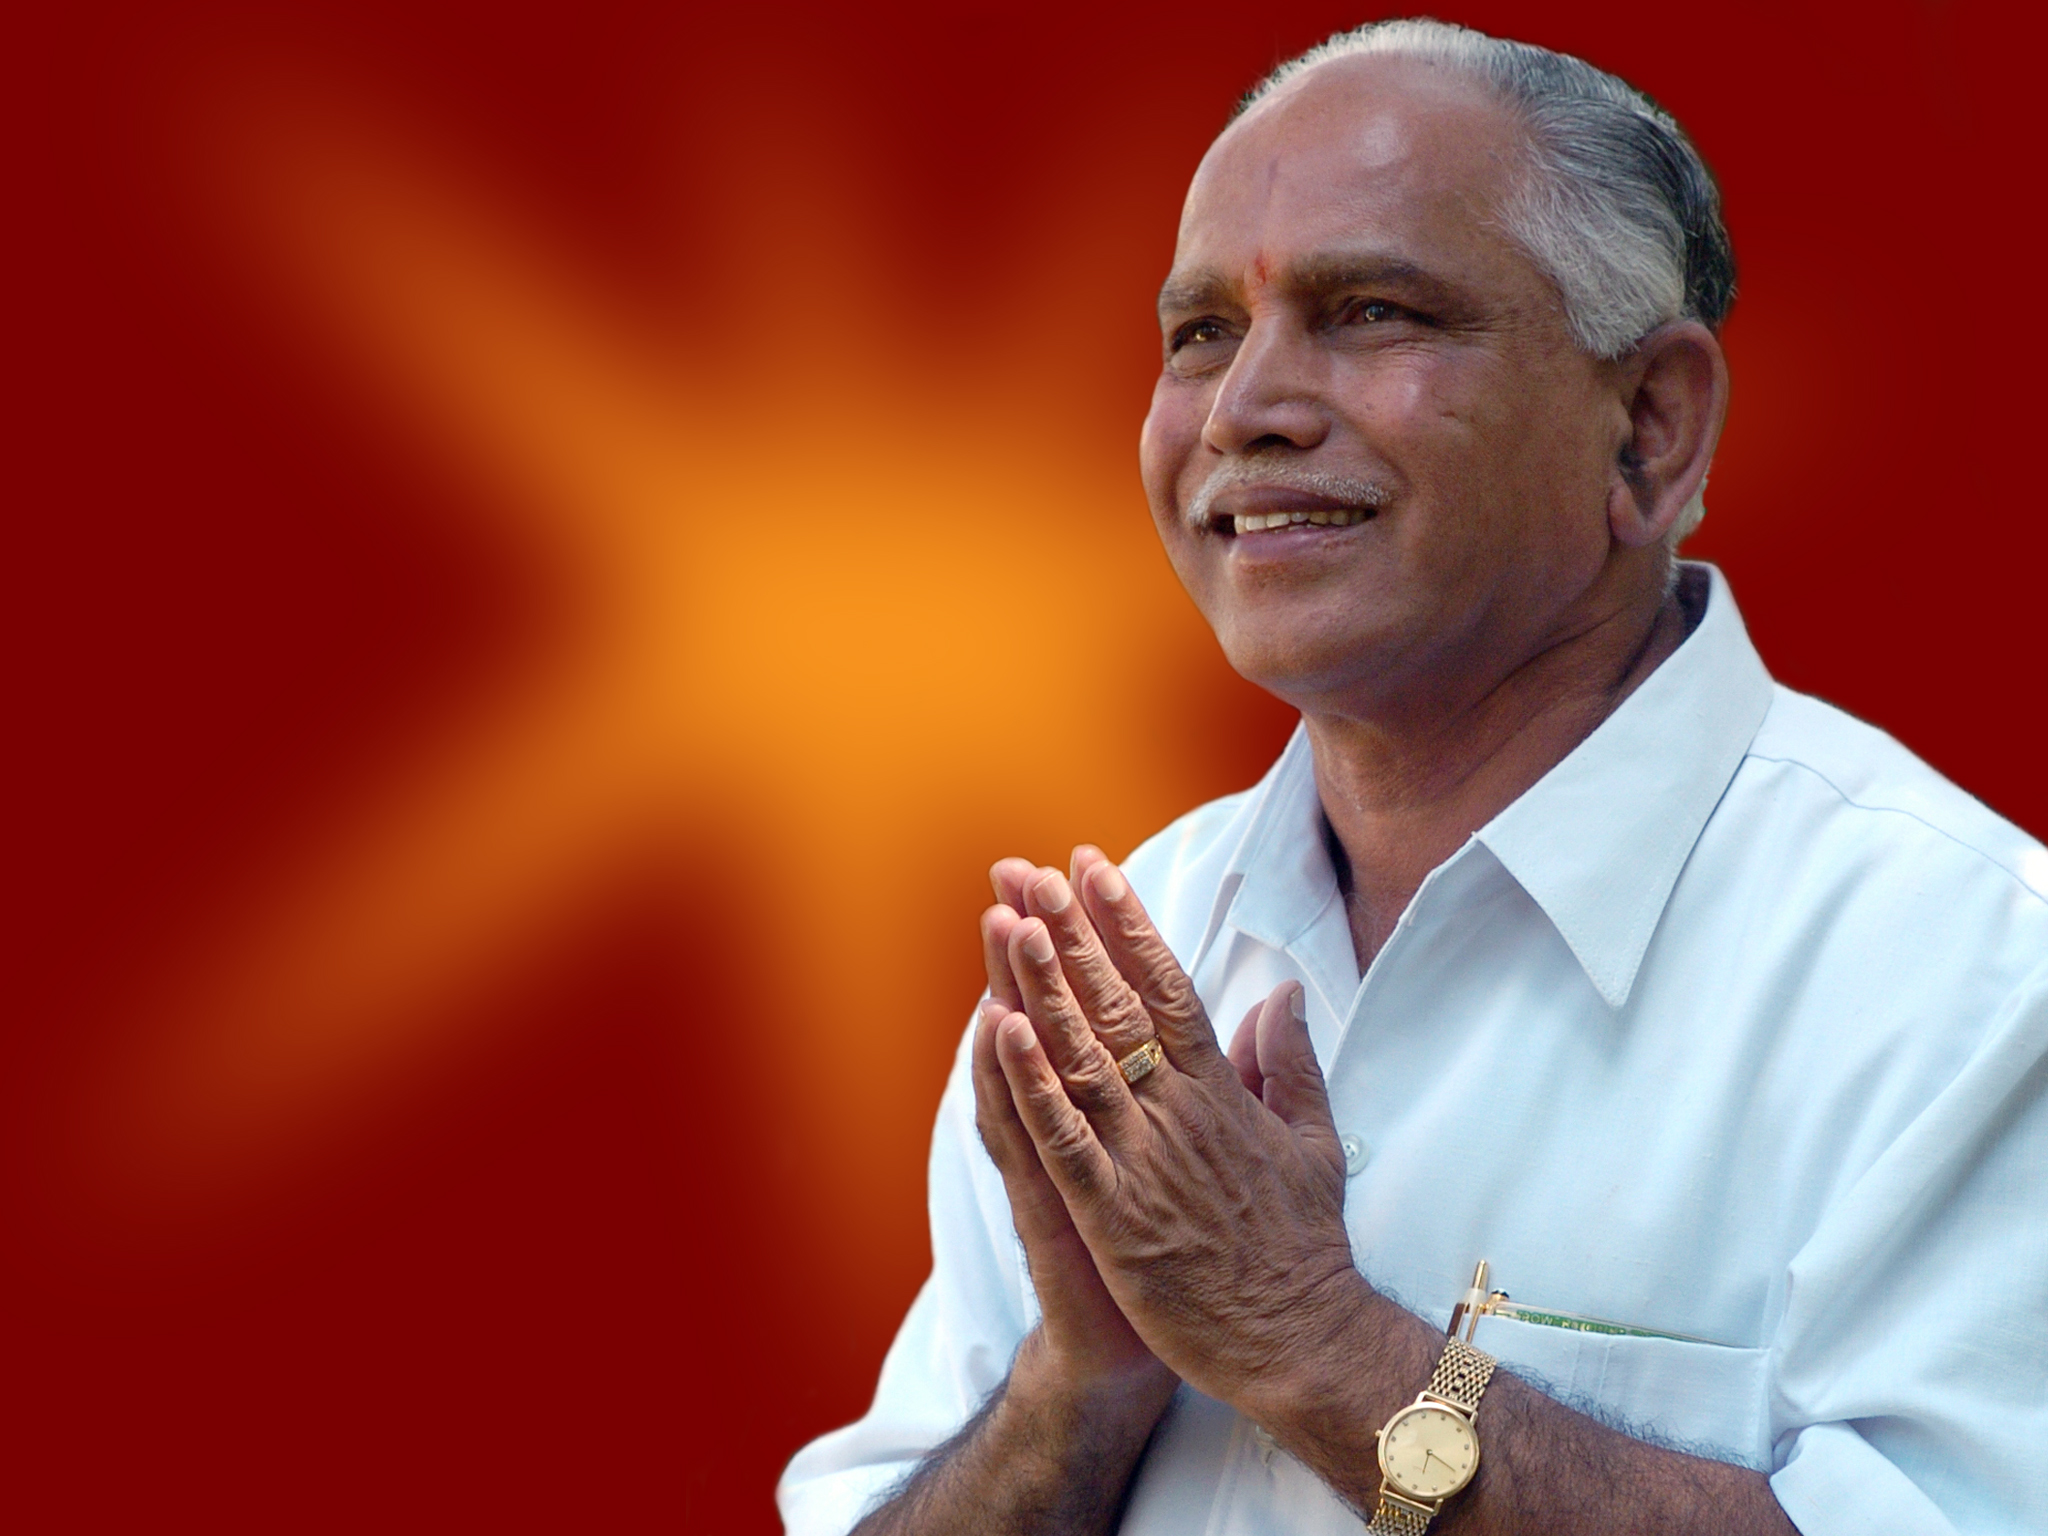 BSY Wallpapers